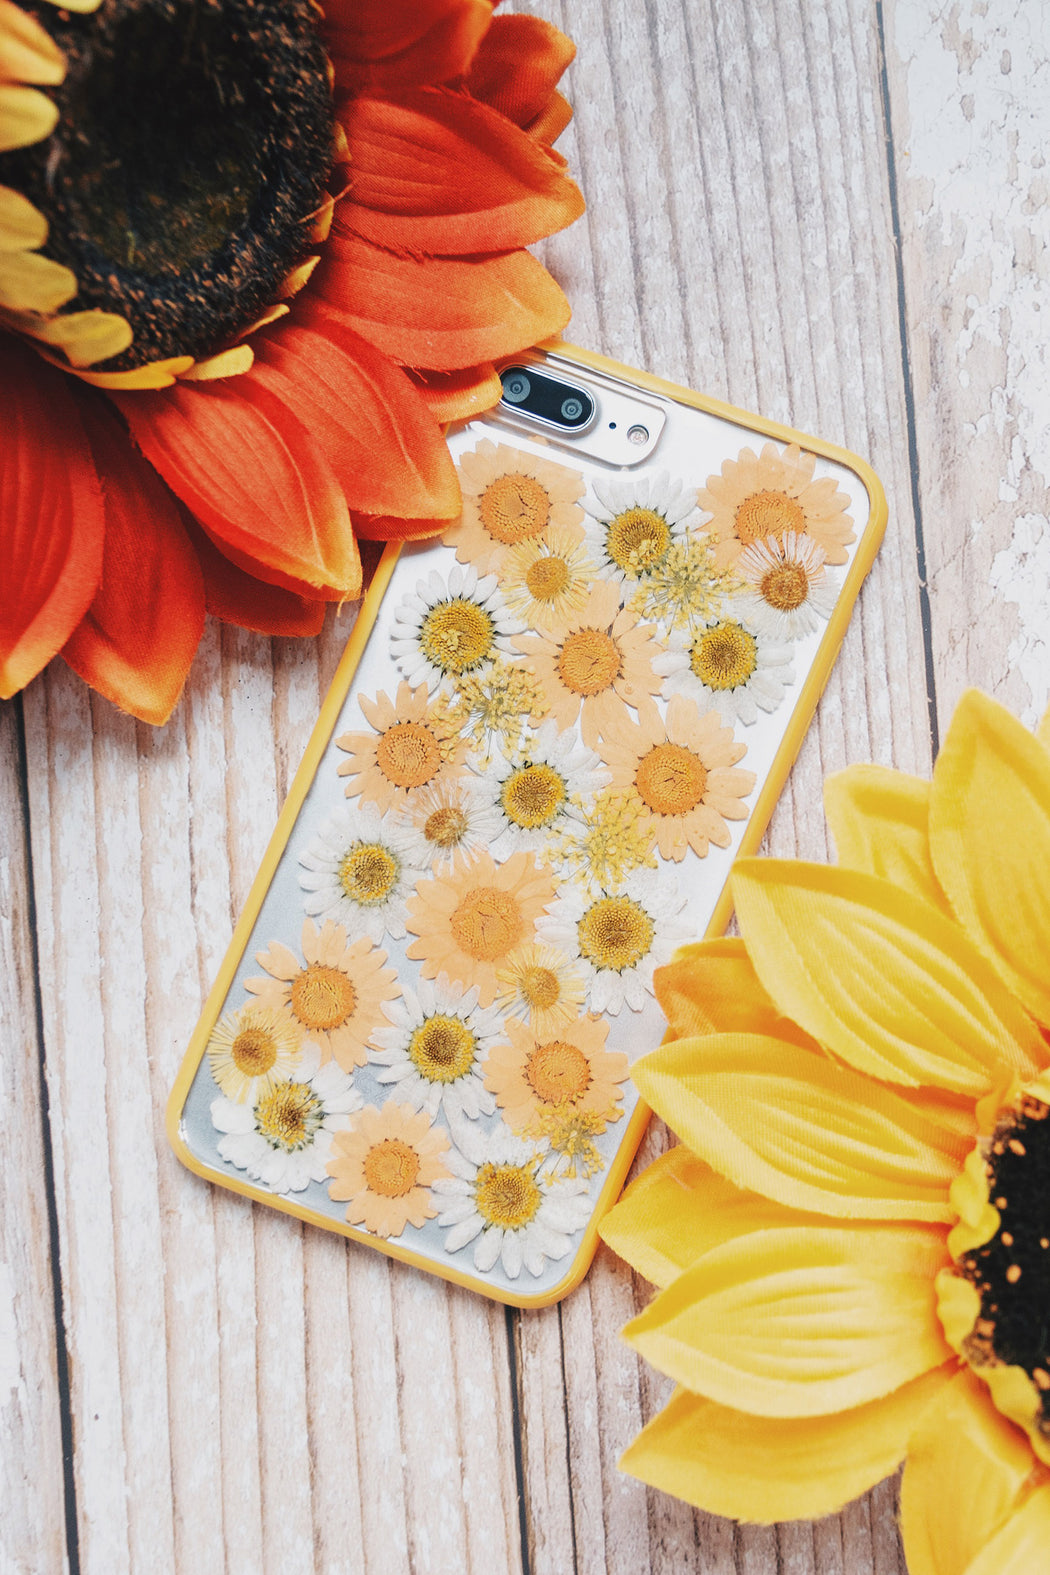 Clementine Floral Neverland Floralfy Real Pressed Yellow and Orange Daisy Flower Floral Protective Anti Drop iPhone 7 Plus 8 Plus Bumper Case